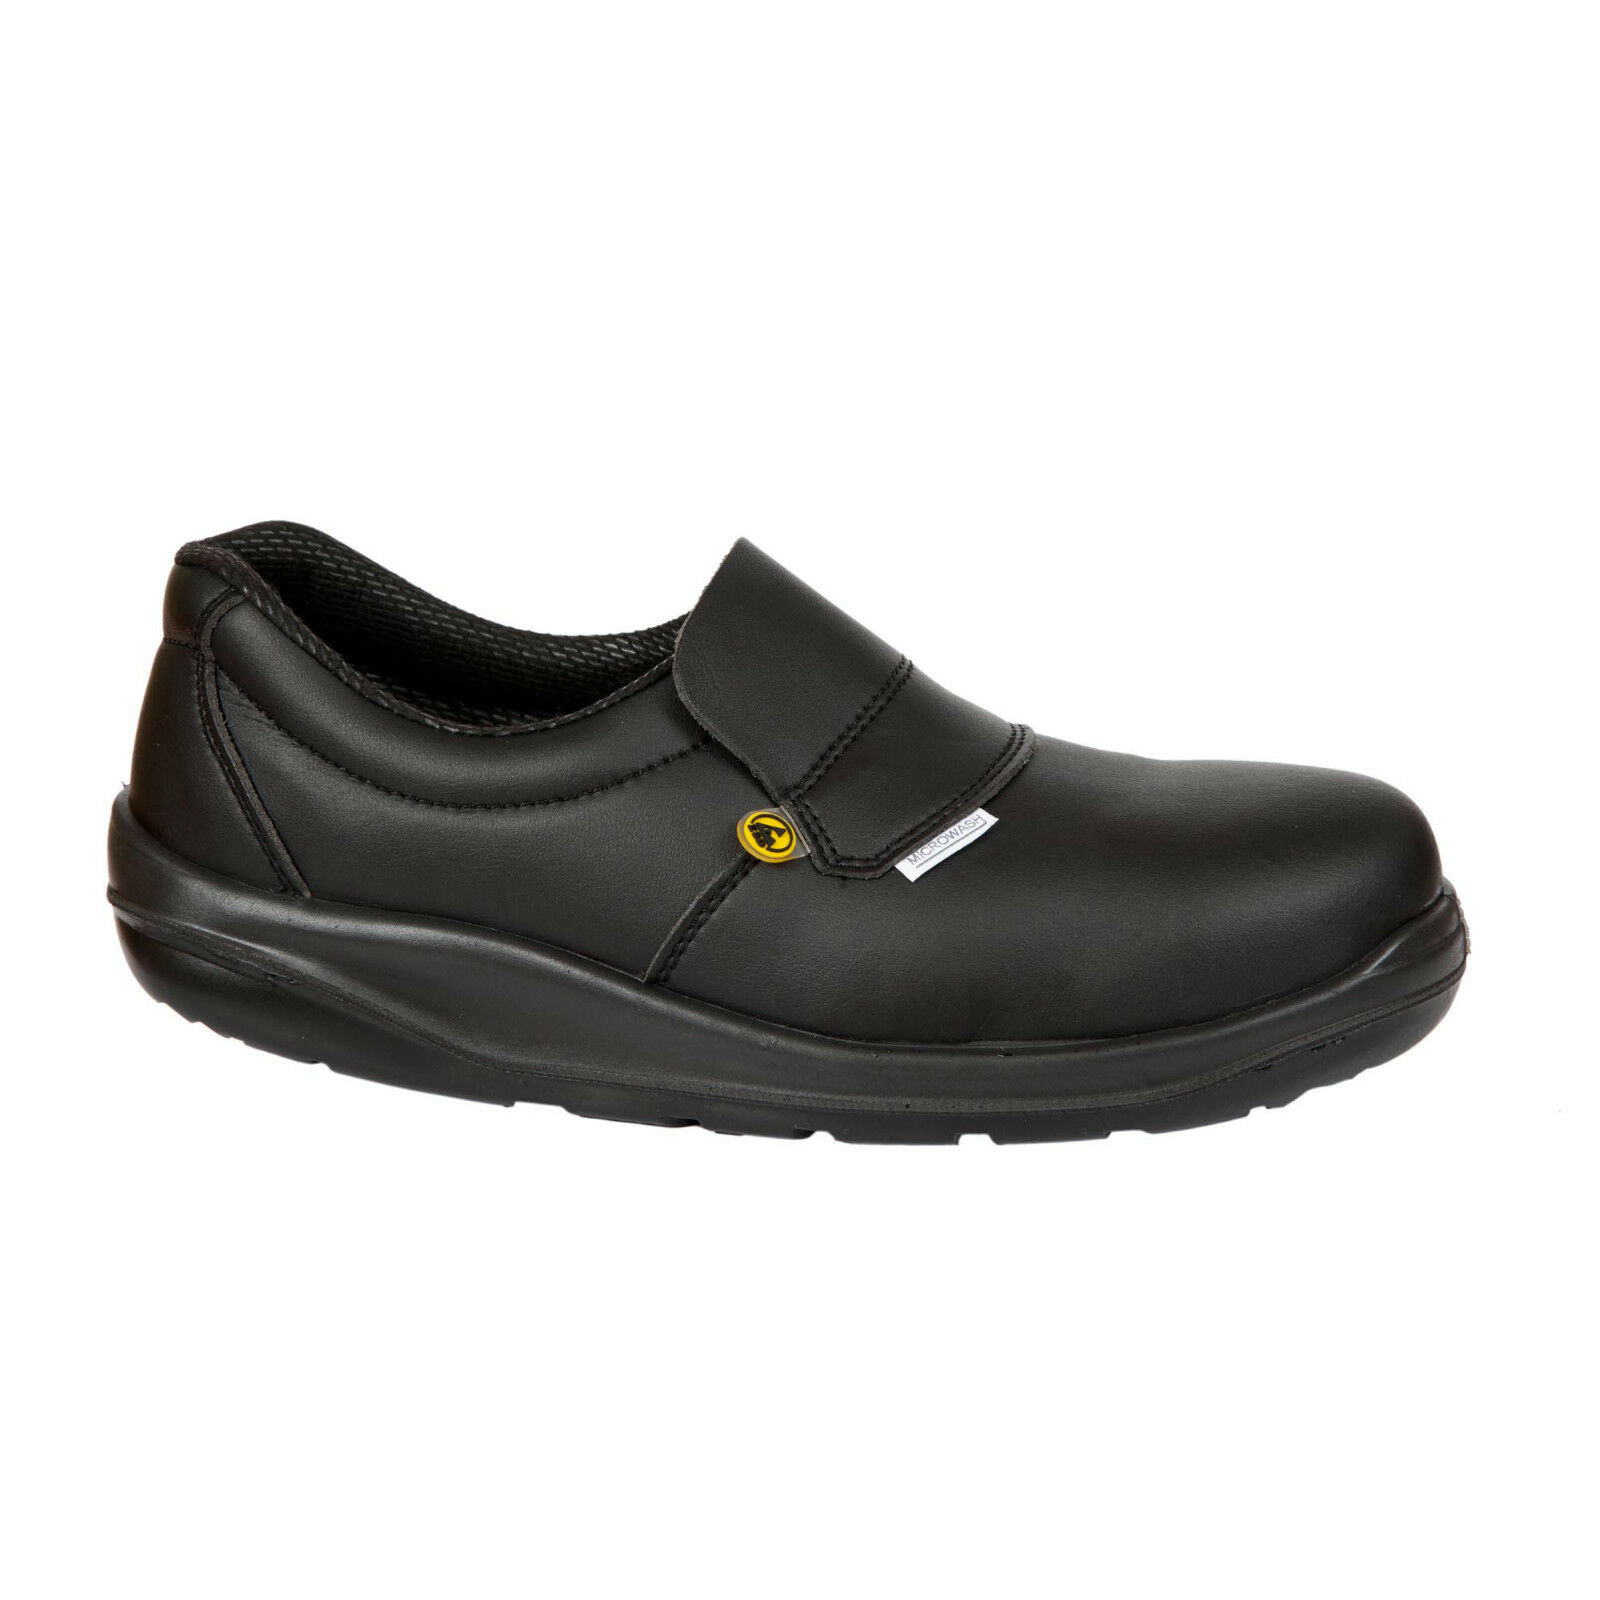 Safety Work Shoes GIASCO ARENDAL clothing workwear MADE IN ITALY no cat